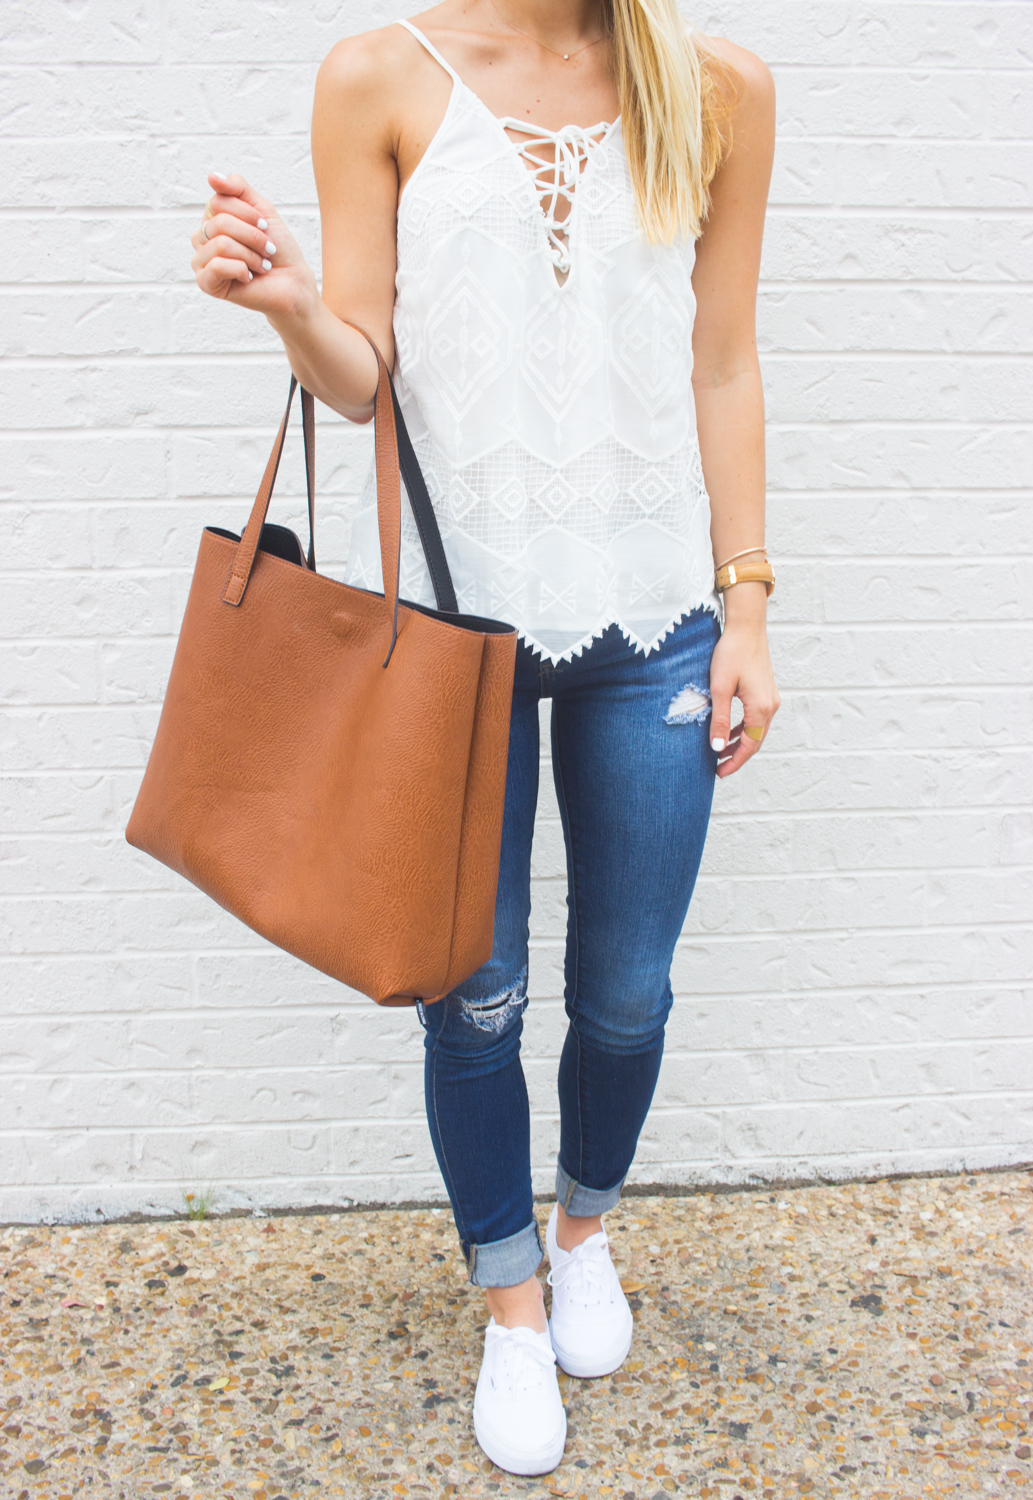 livvyland-blog-olivia-watson-austin-texas-fashion-blogger-nordstrom-vans-white-sneakers-summer-outfit-5